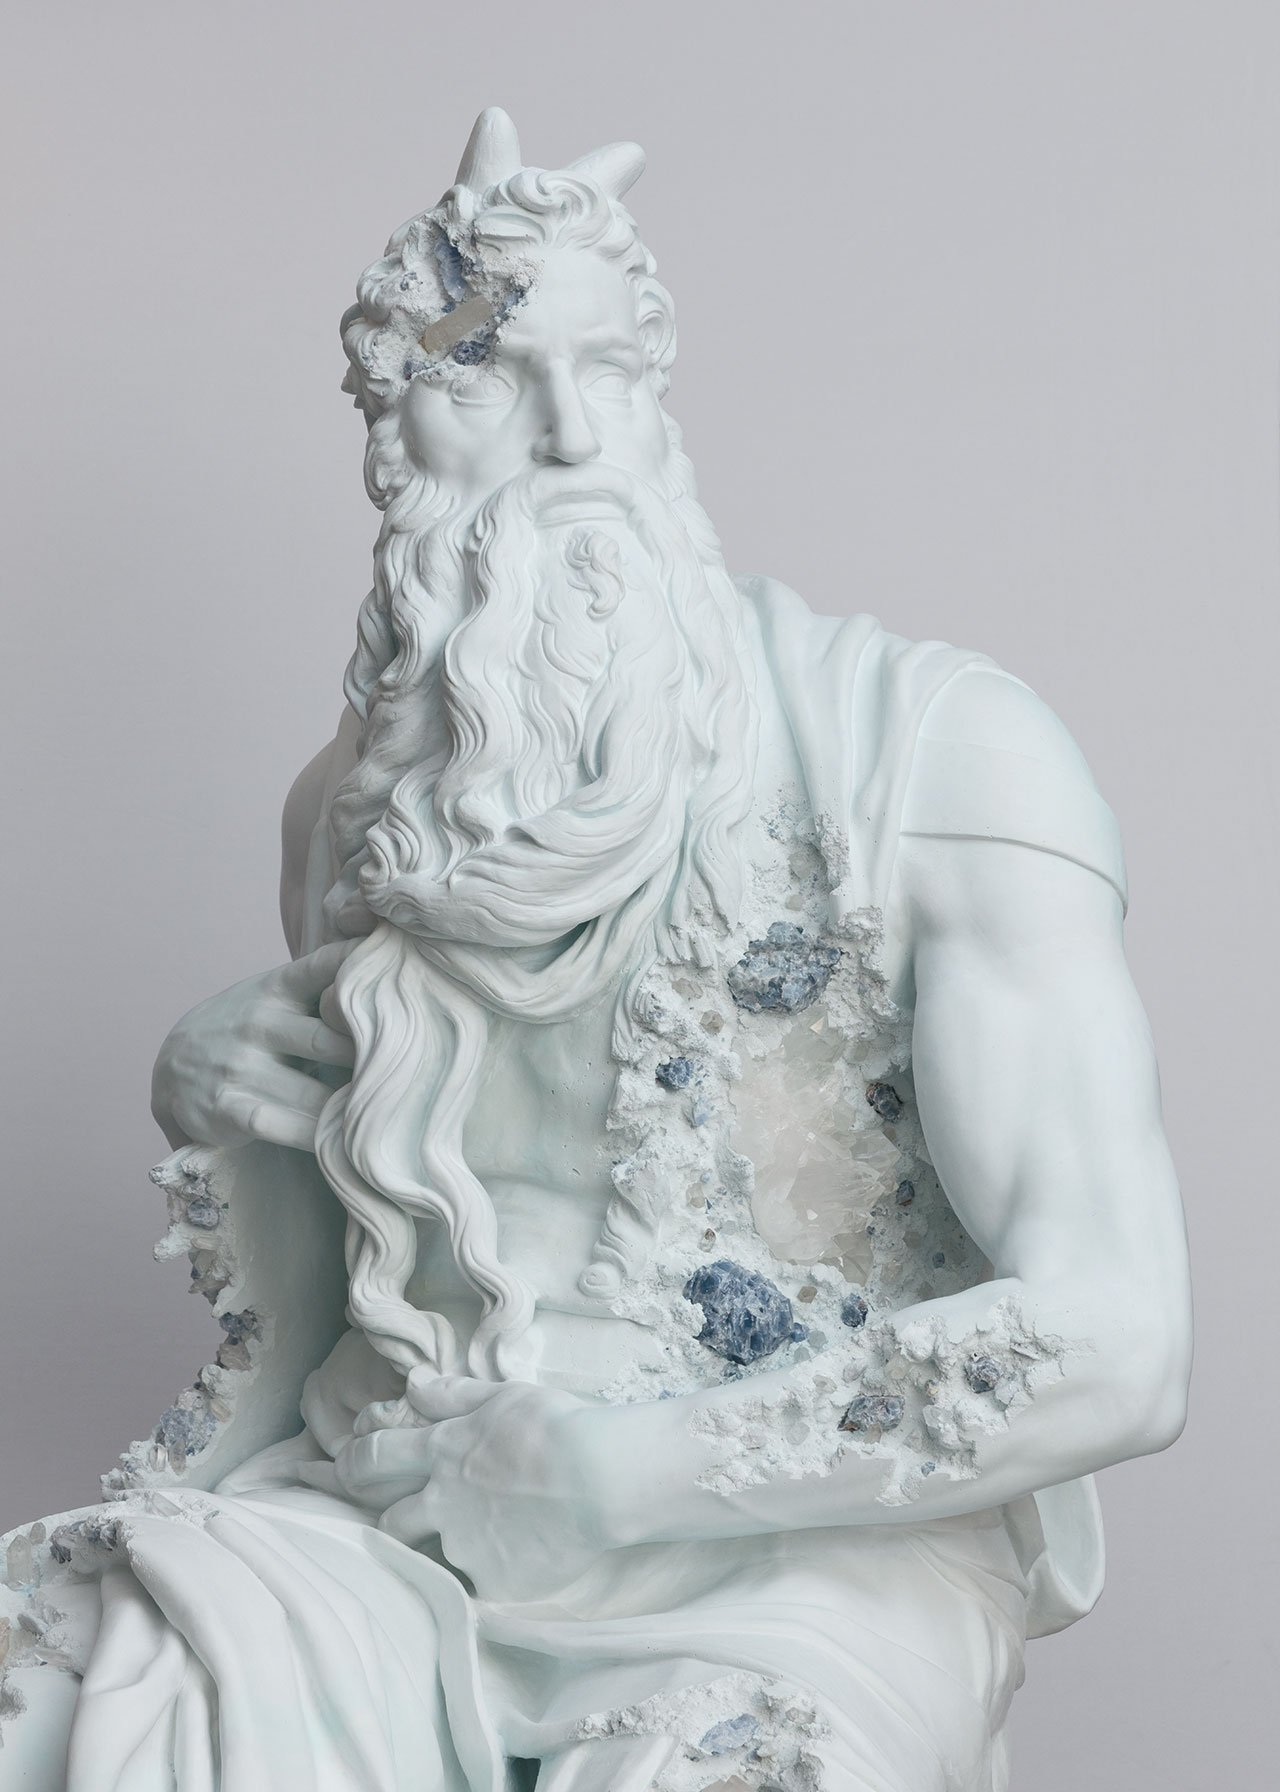 Daniel Arsham, Blue Calcite Eroded Moses, (detail) 2019. Blue calcite, hydrostone. 260 x 119 x 125 cm | 102 3/8 x 46 7/8 x 49 3/16 in. Photo by Claire Dorn. © Courtesy the artist & Perrotin.